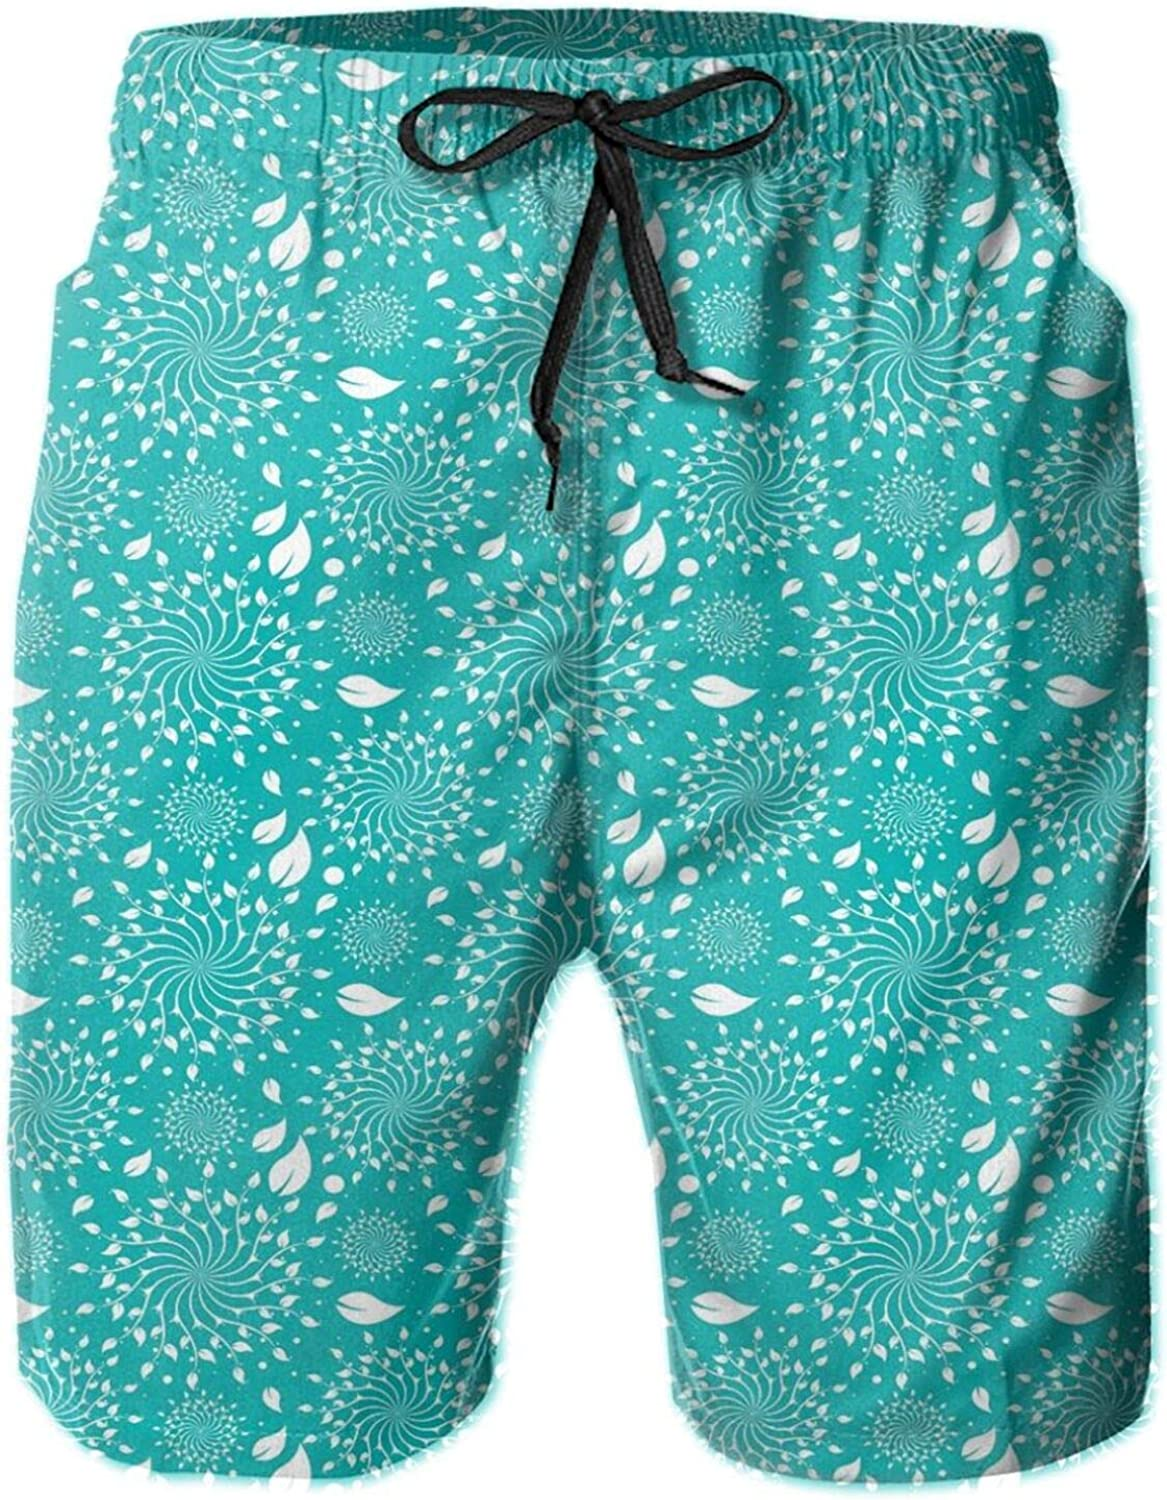 Blossoming Nature Theme Swirls Vortex Leaves Stalks and Dots Vintage Pattern Swimming Trunks for Men Beach Shorts Casual Style,XL